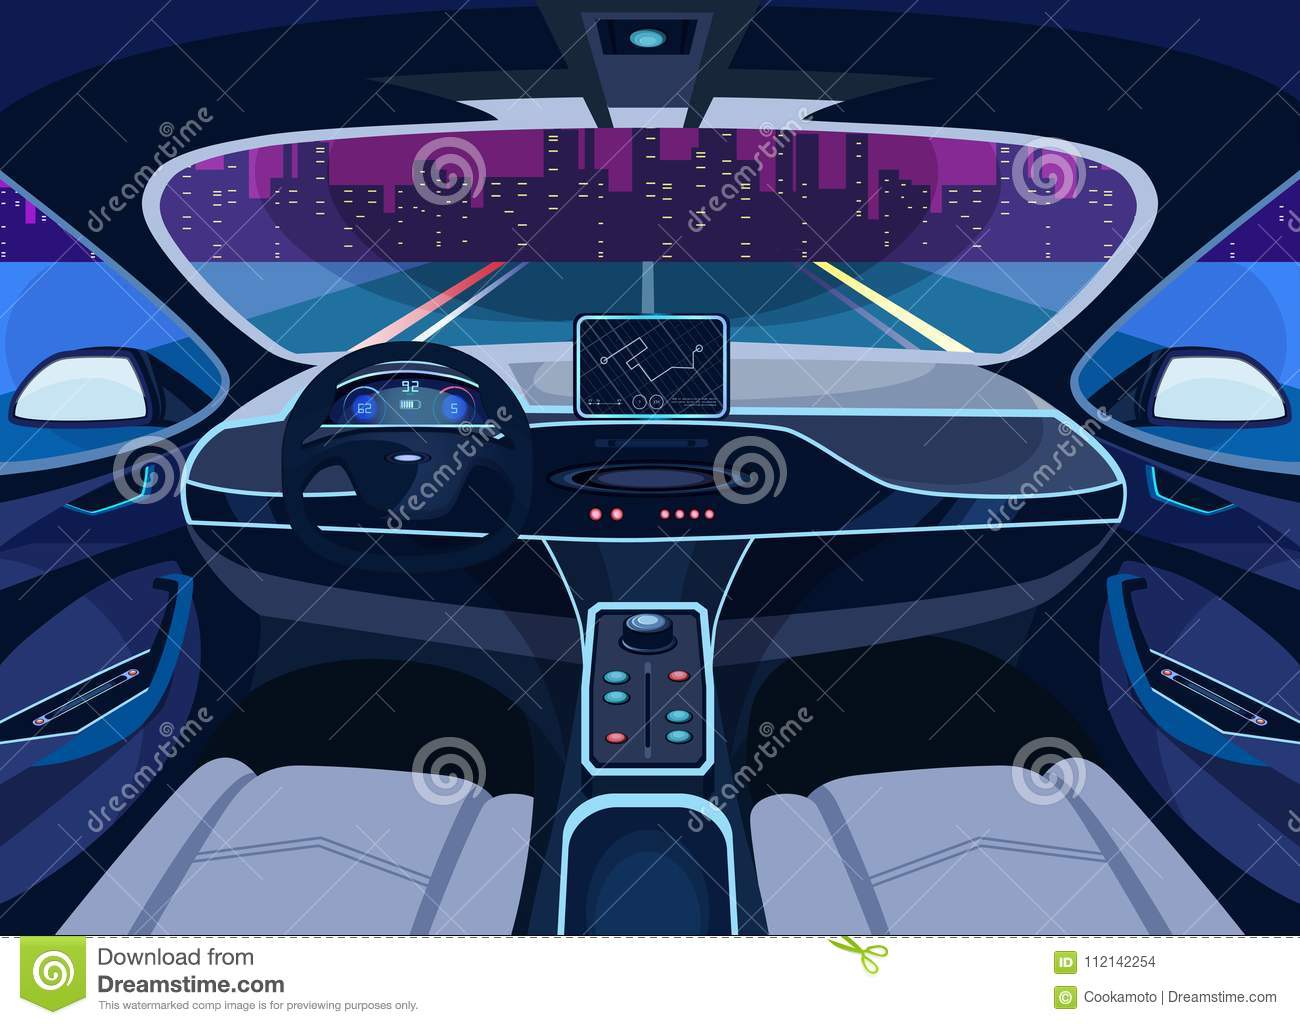 Futuristic car salon with GPS, autopilot vehicle